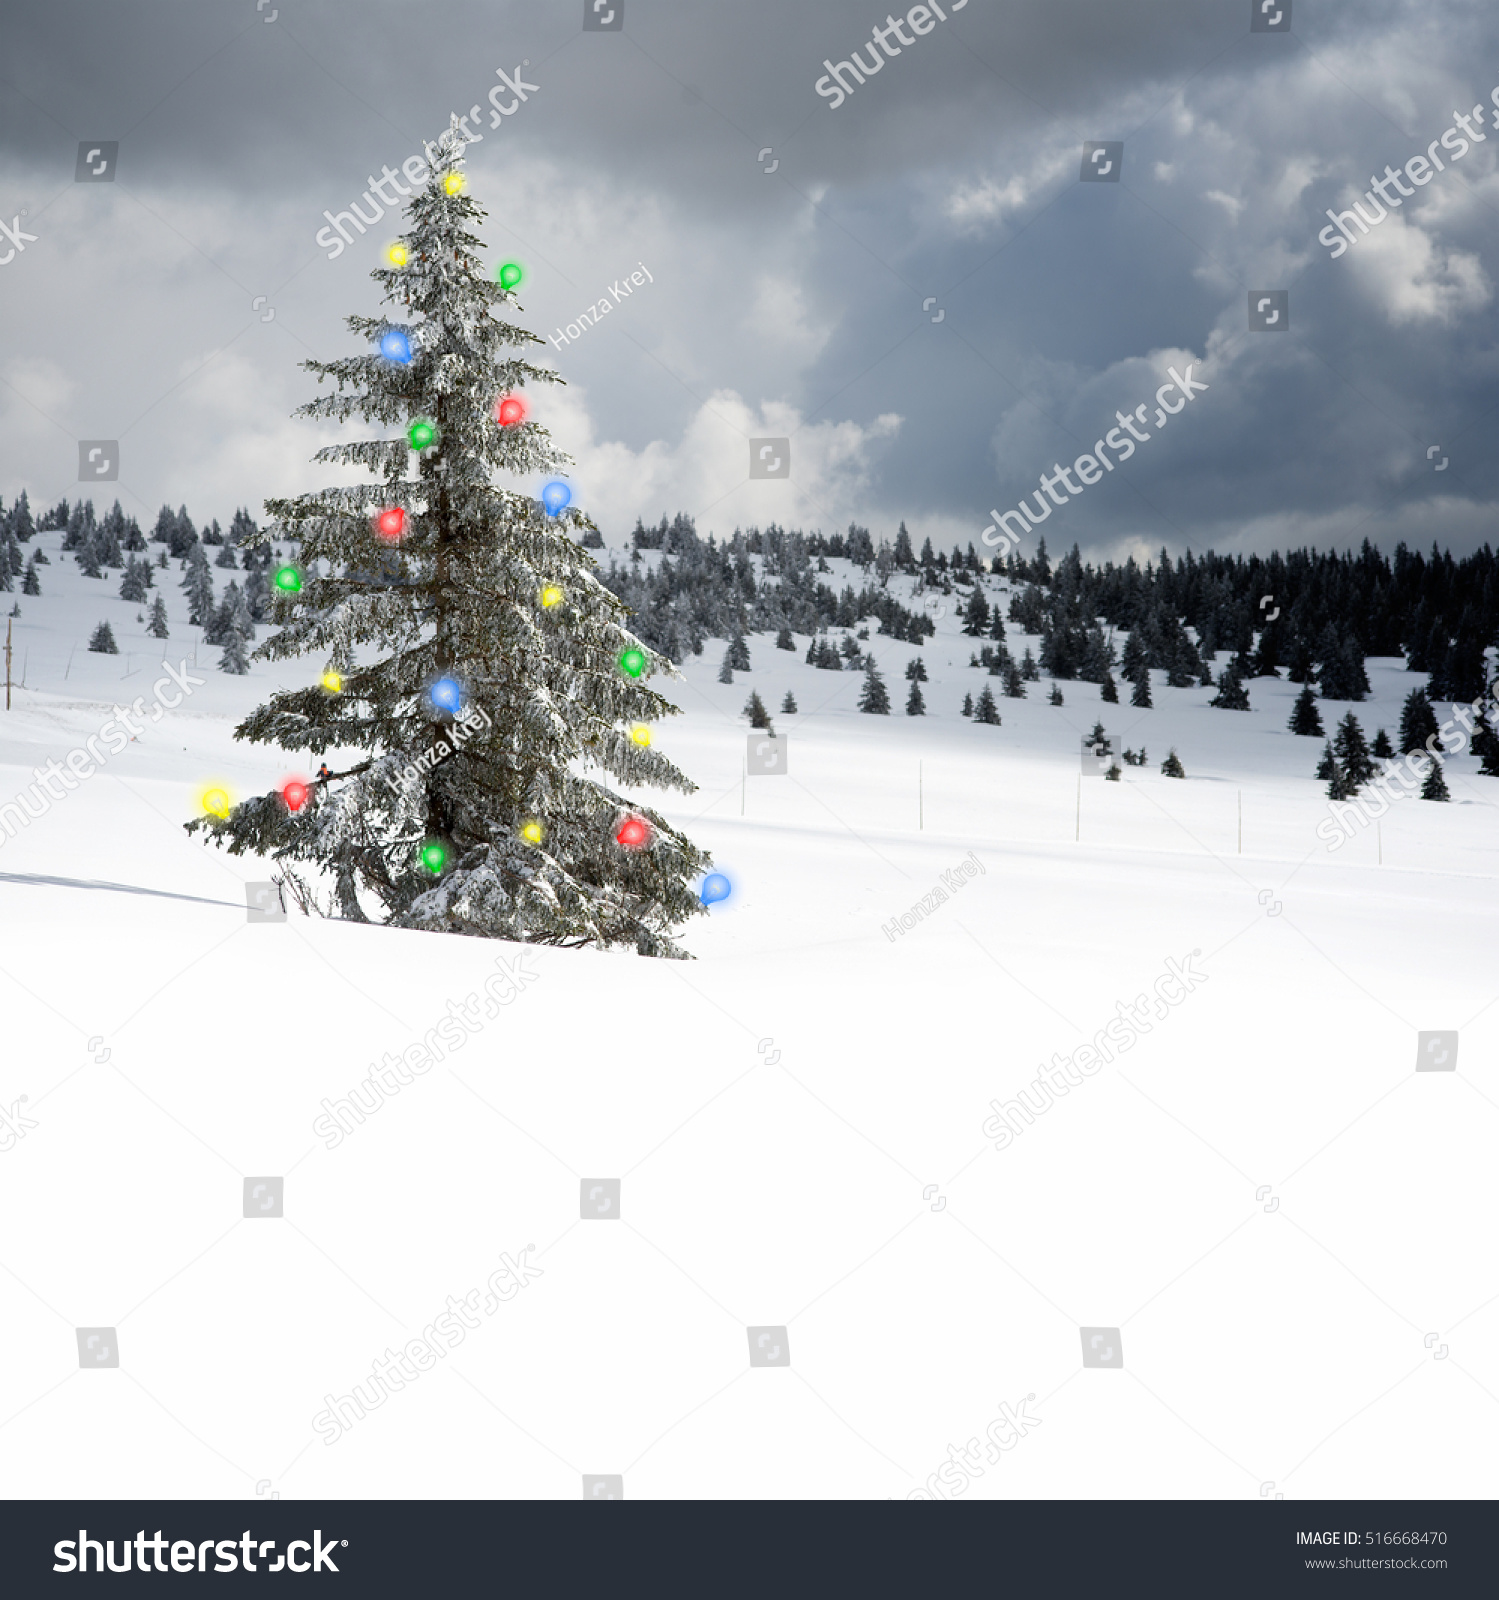 Snow covered christmas tree with small hut christmas winter scene